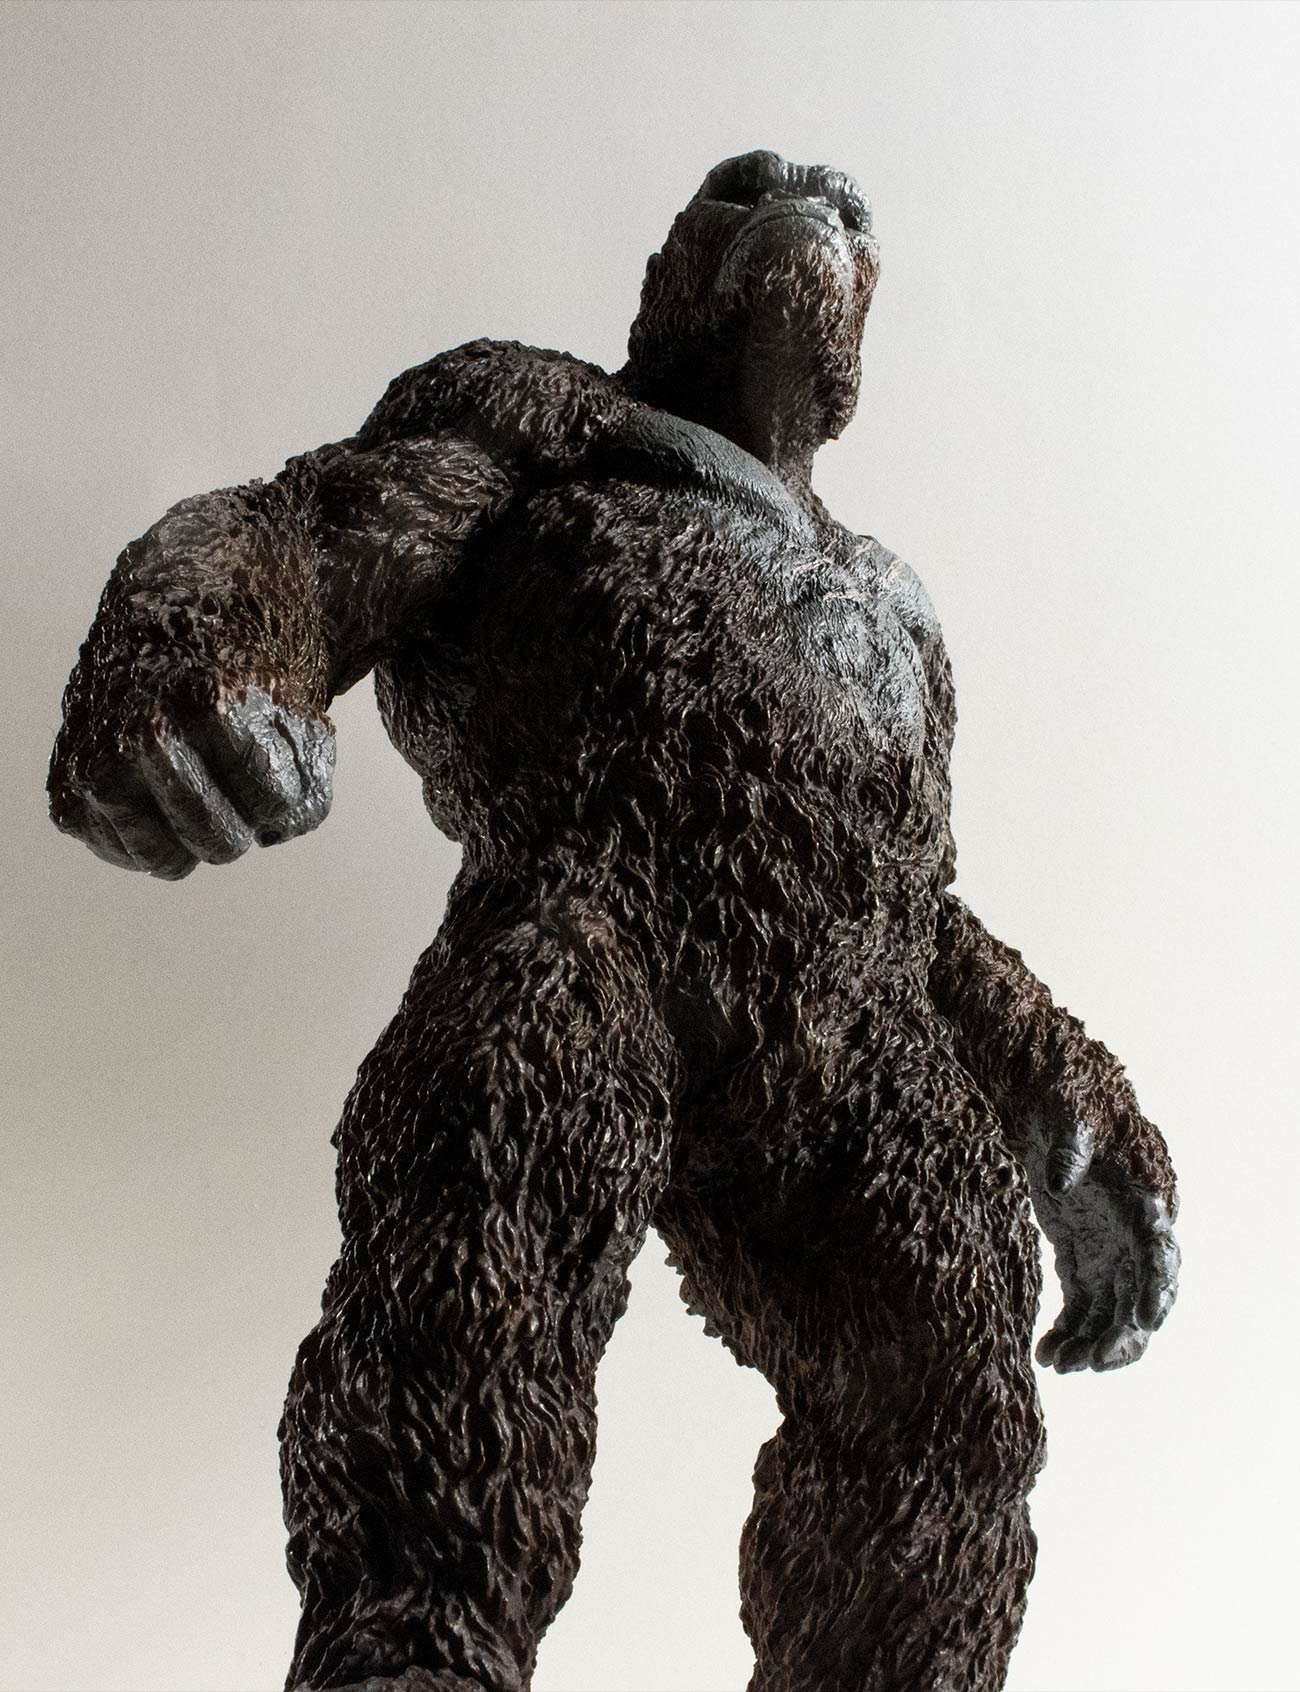 Full Review Star Ace X Plus 12 Inch Kong Skull Island